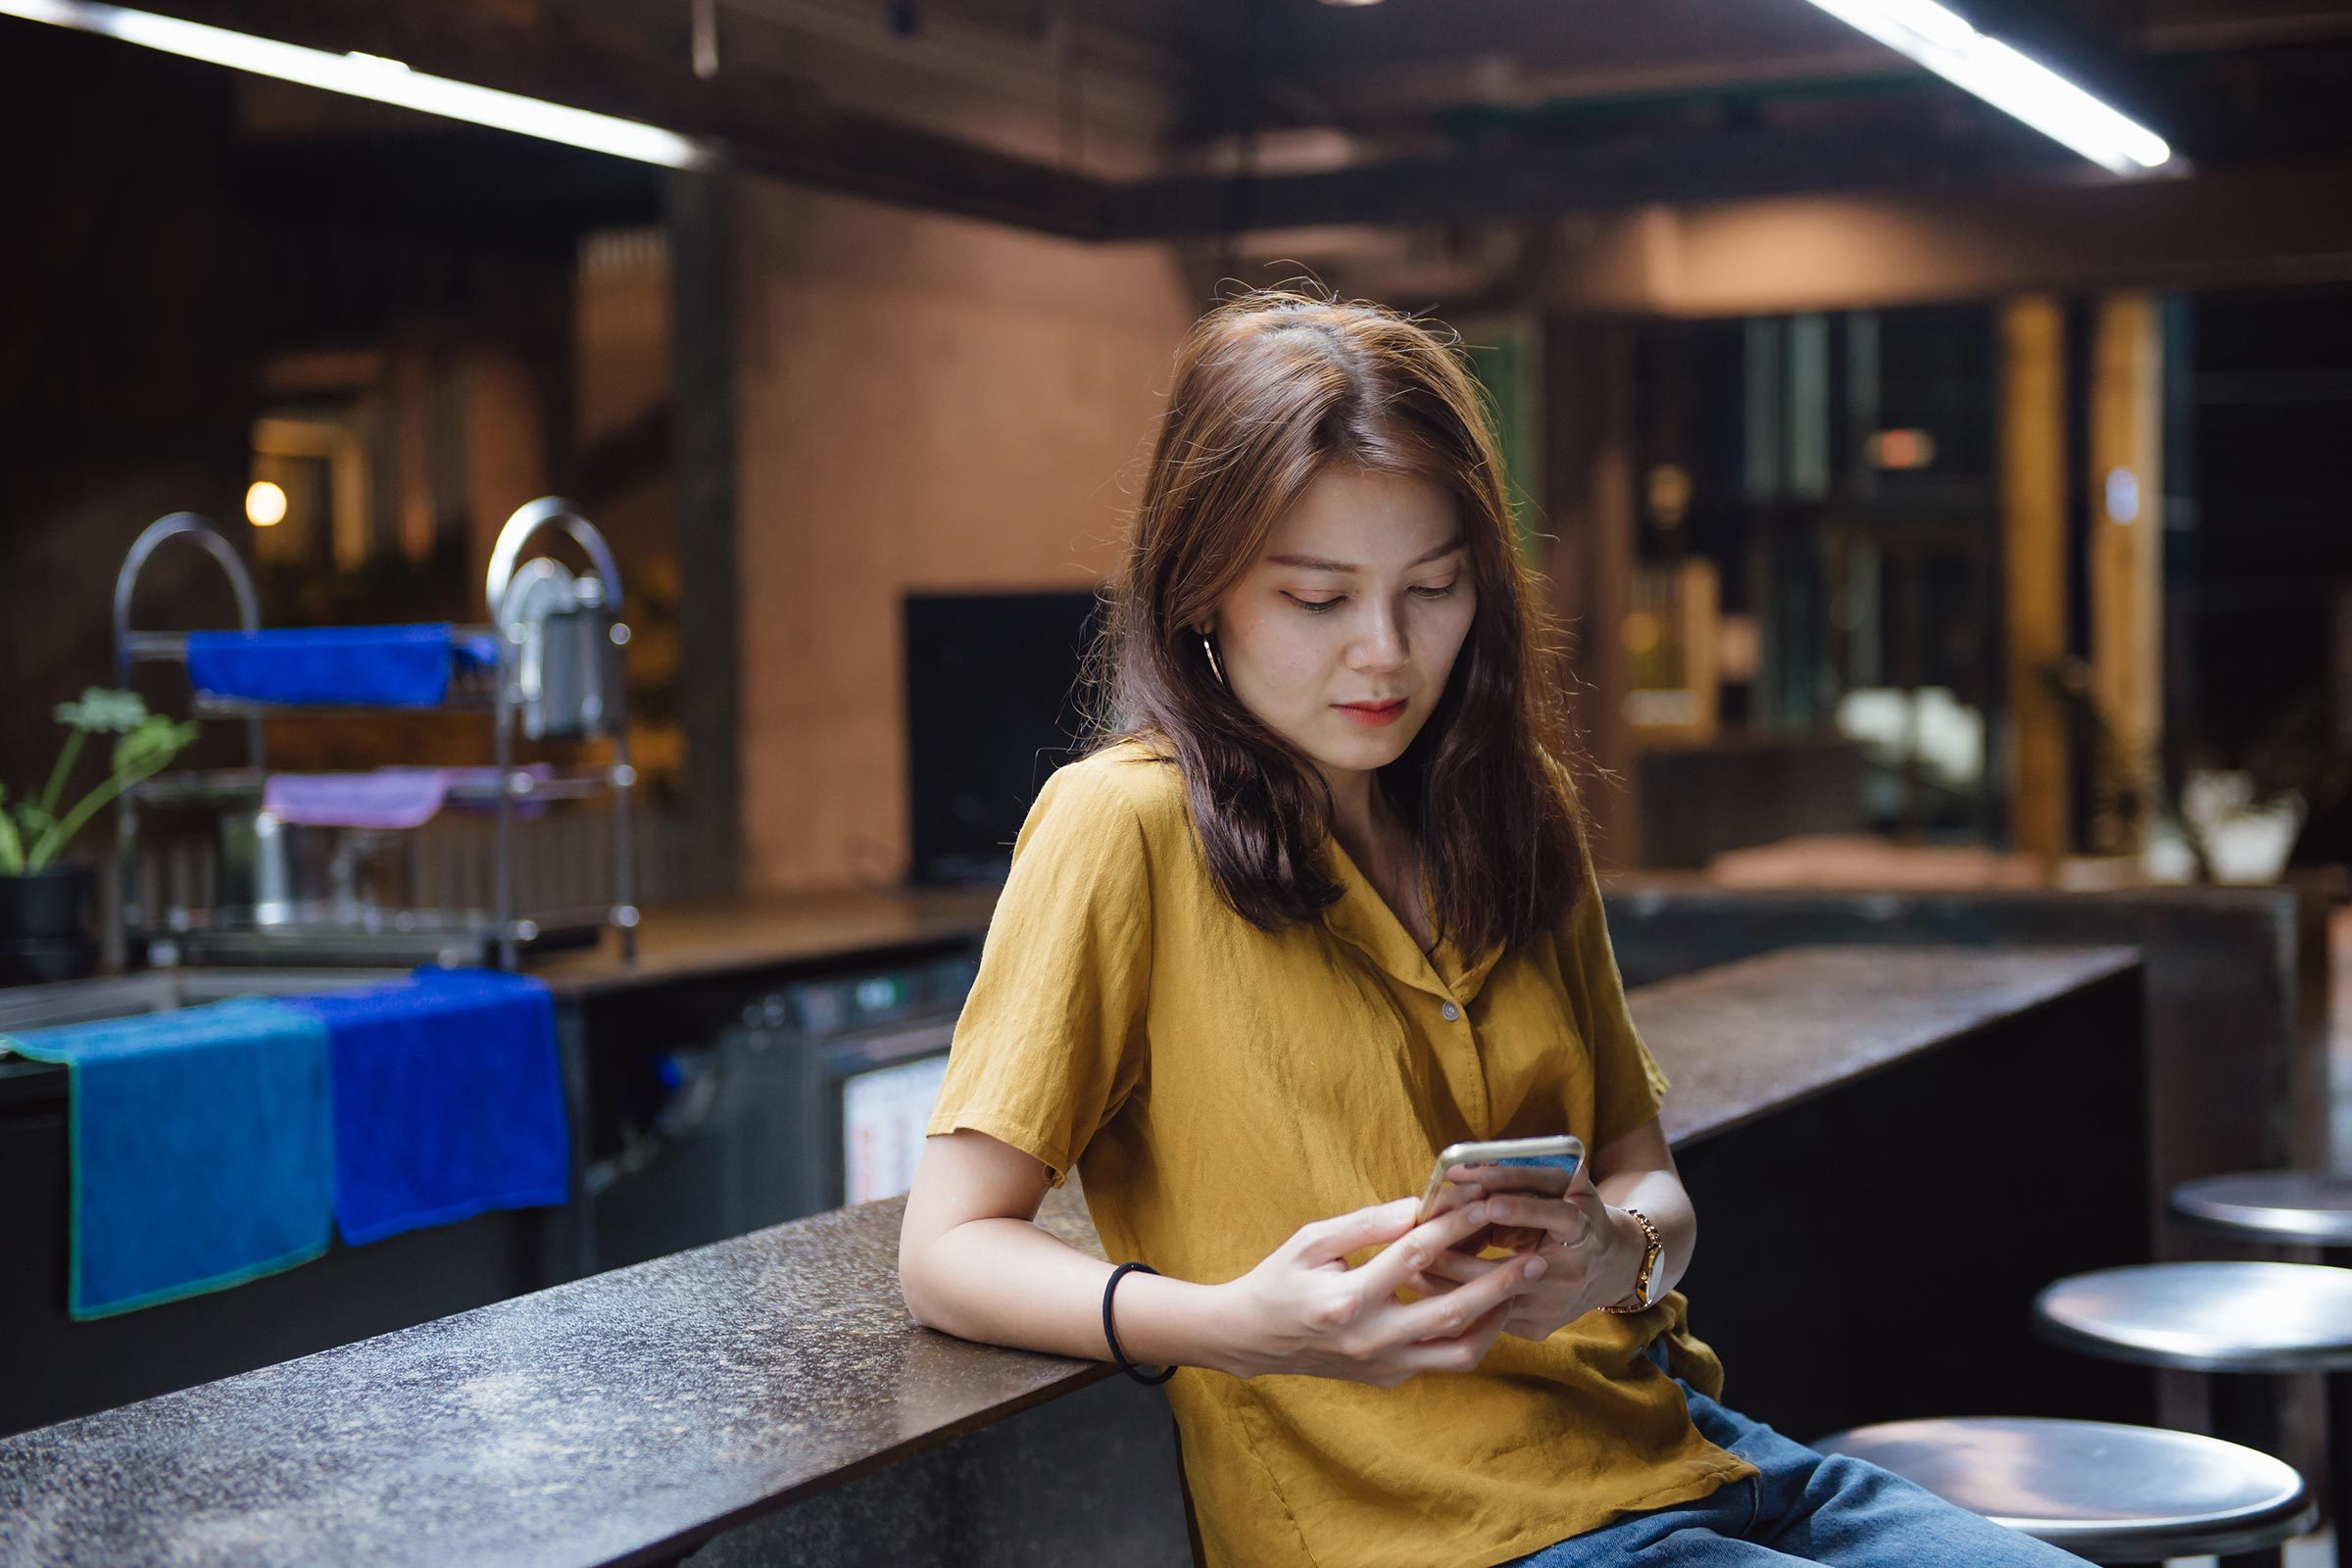 woman alone at bar checking phone